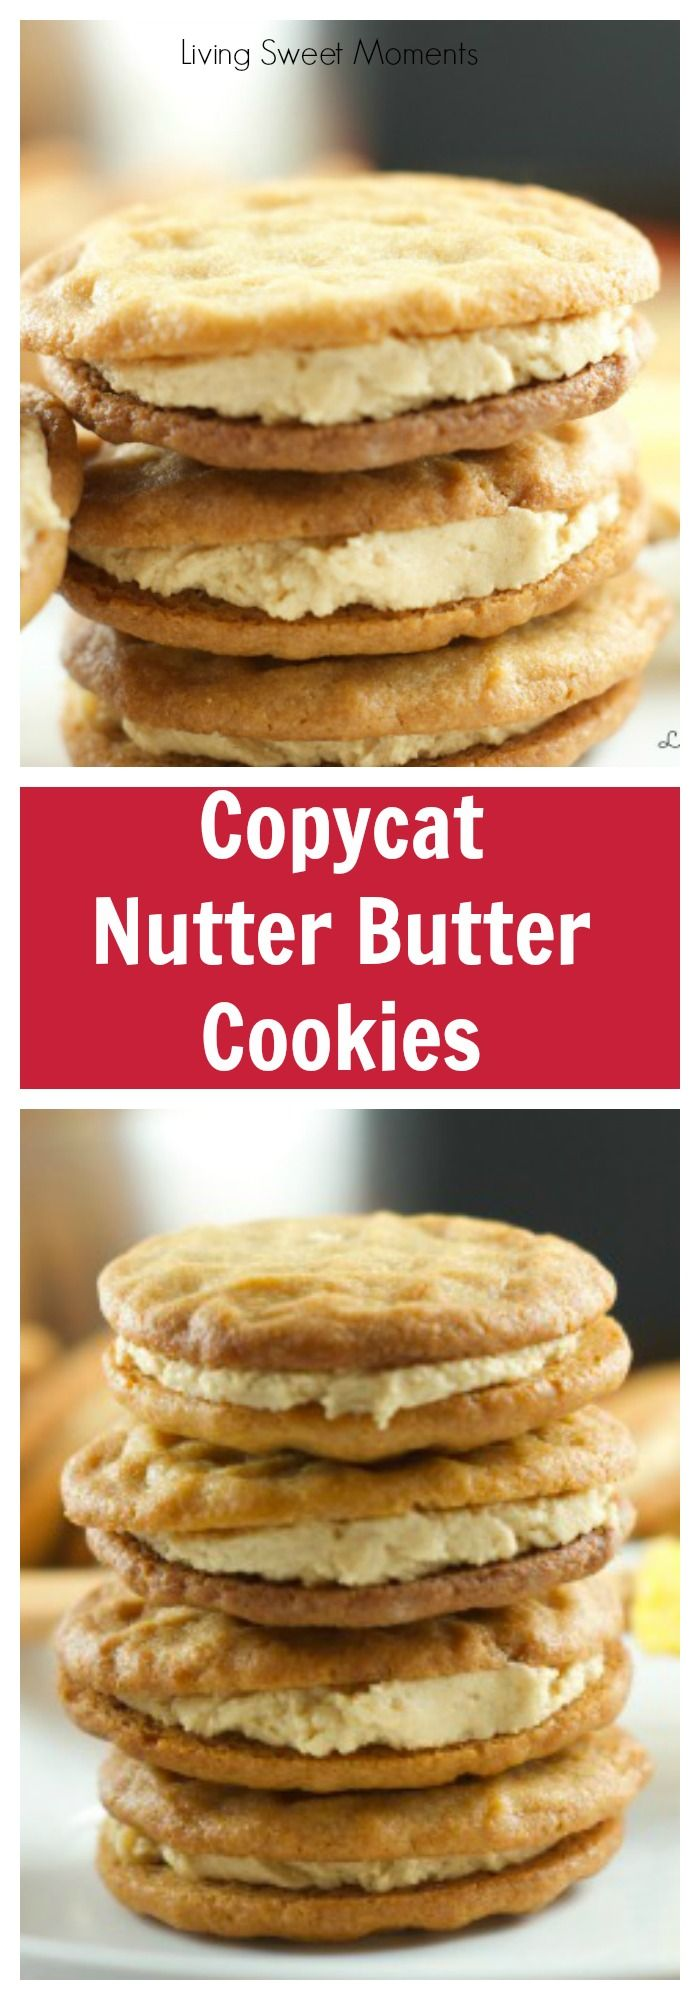 Copycat Nutter Butter Cookies - these homemade peanut butter cookies filled with delicious creamy peanut frosting are more delicious than the original kind. More copycat cookie recipes at livingsweetmoments.com via @Livingsmoments